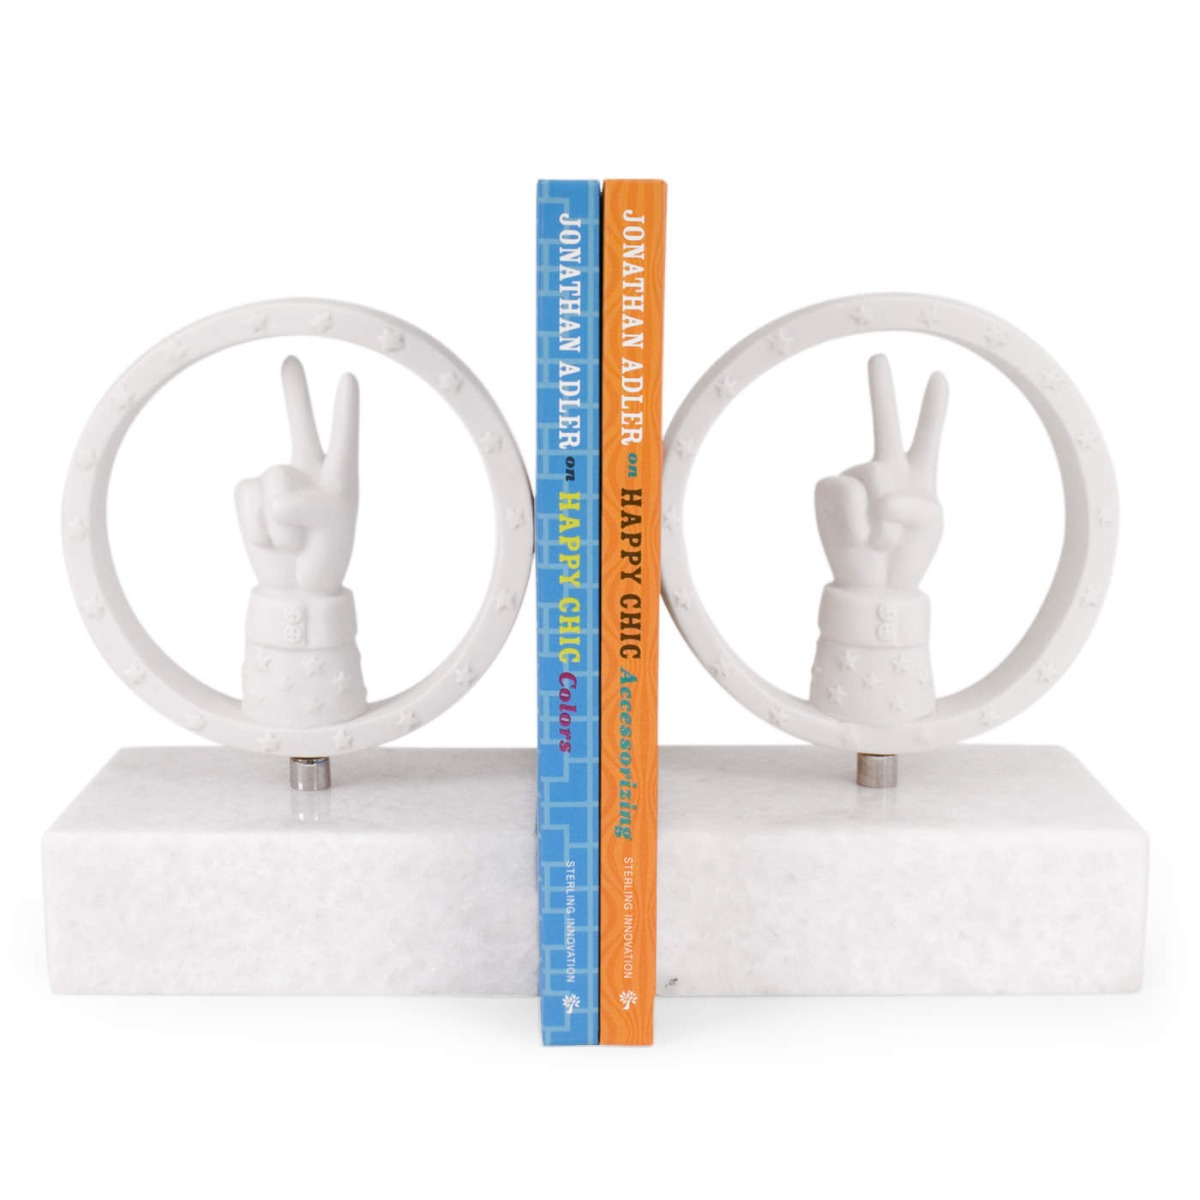 PEACE BOOKEND SET